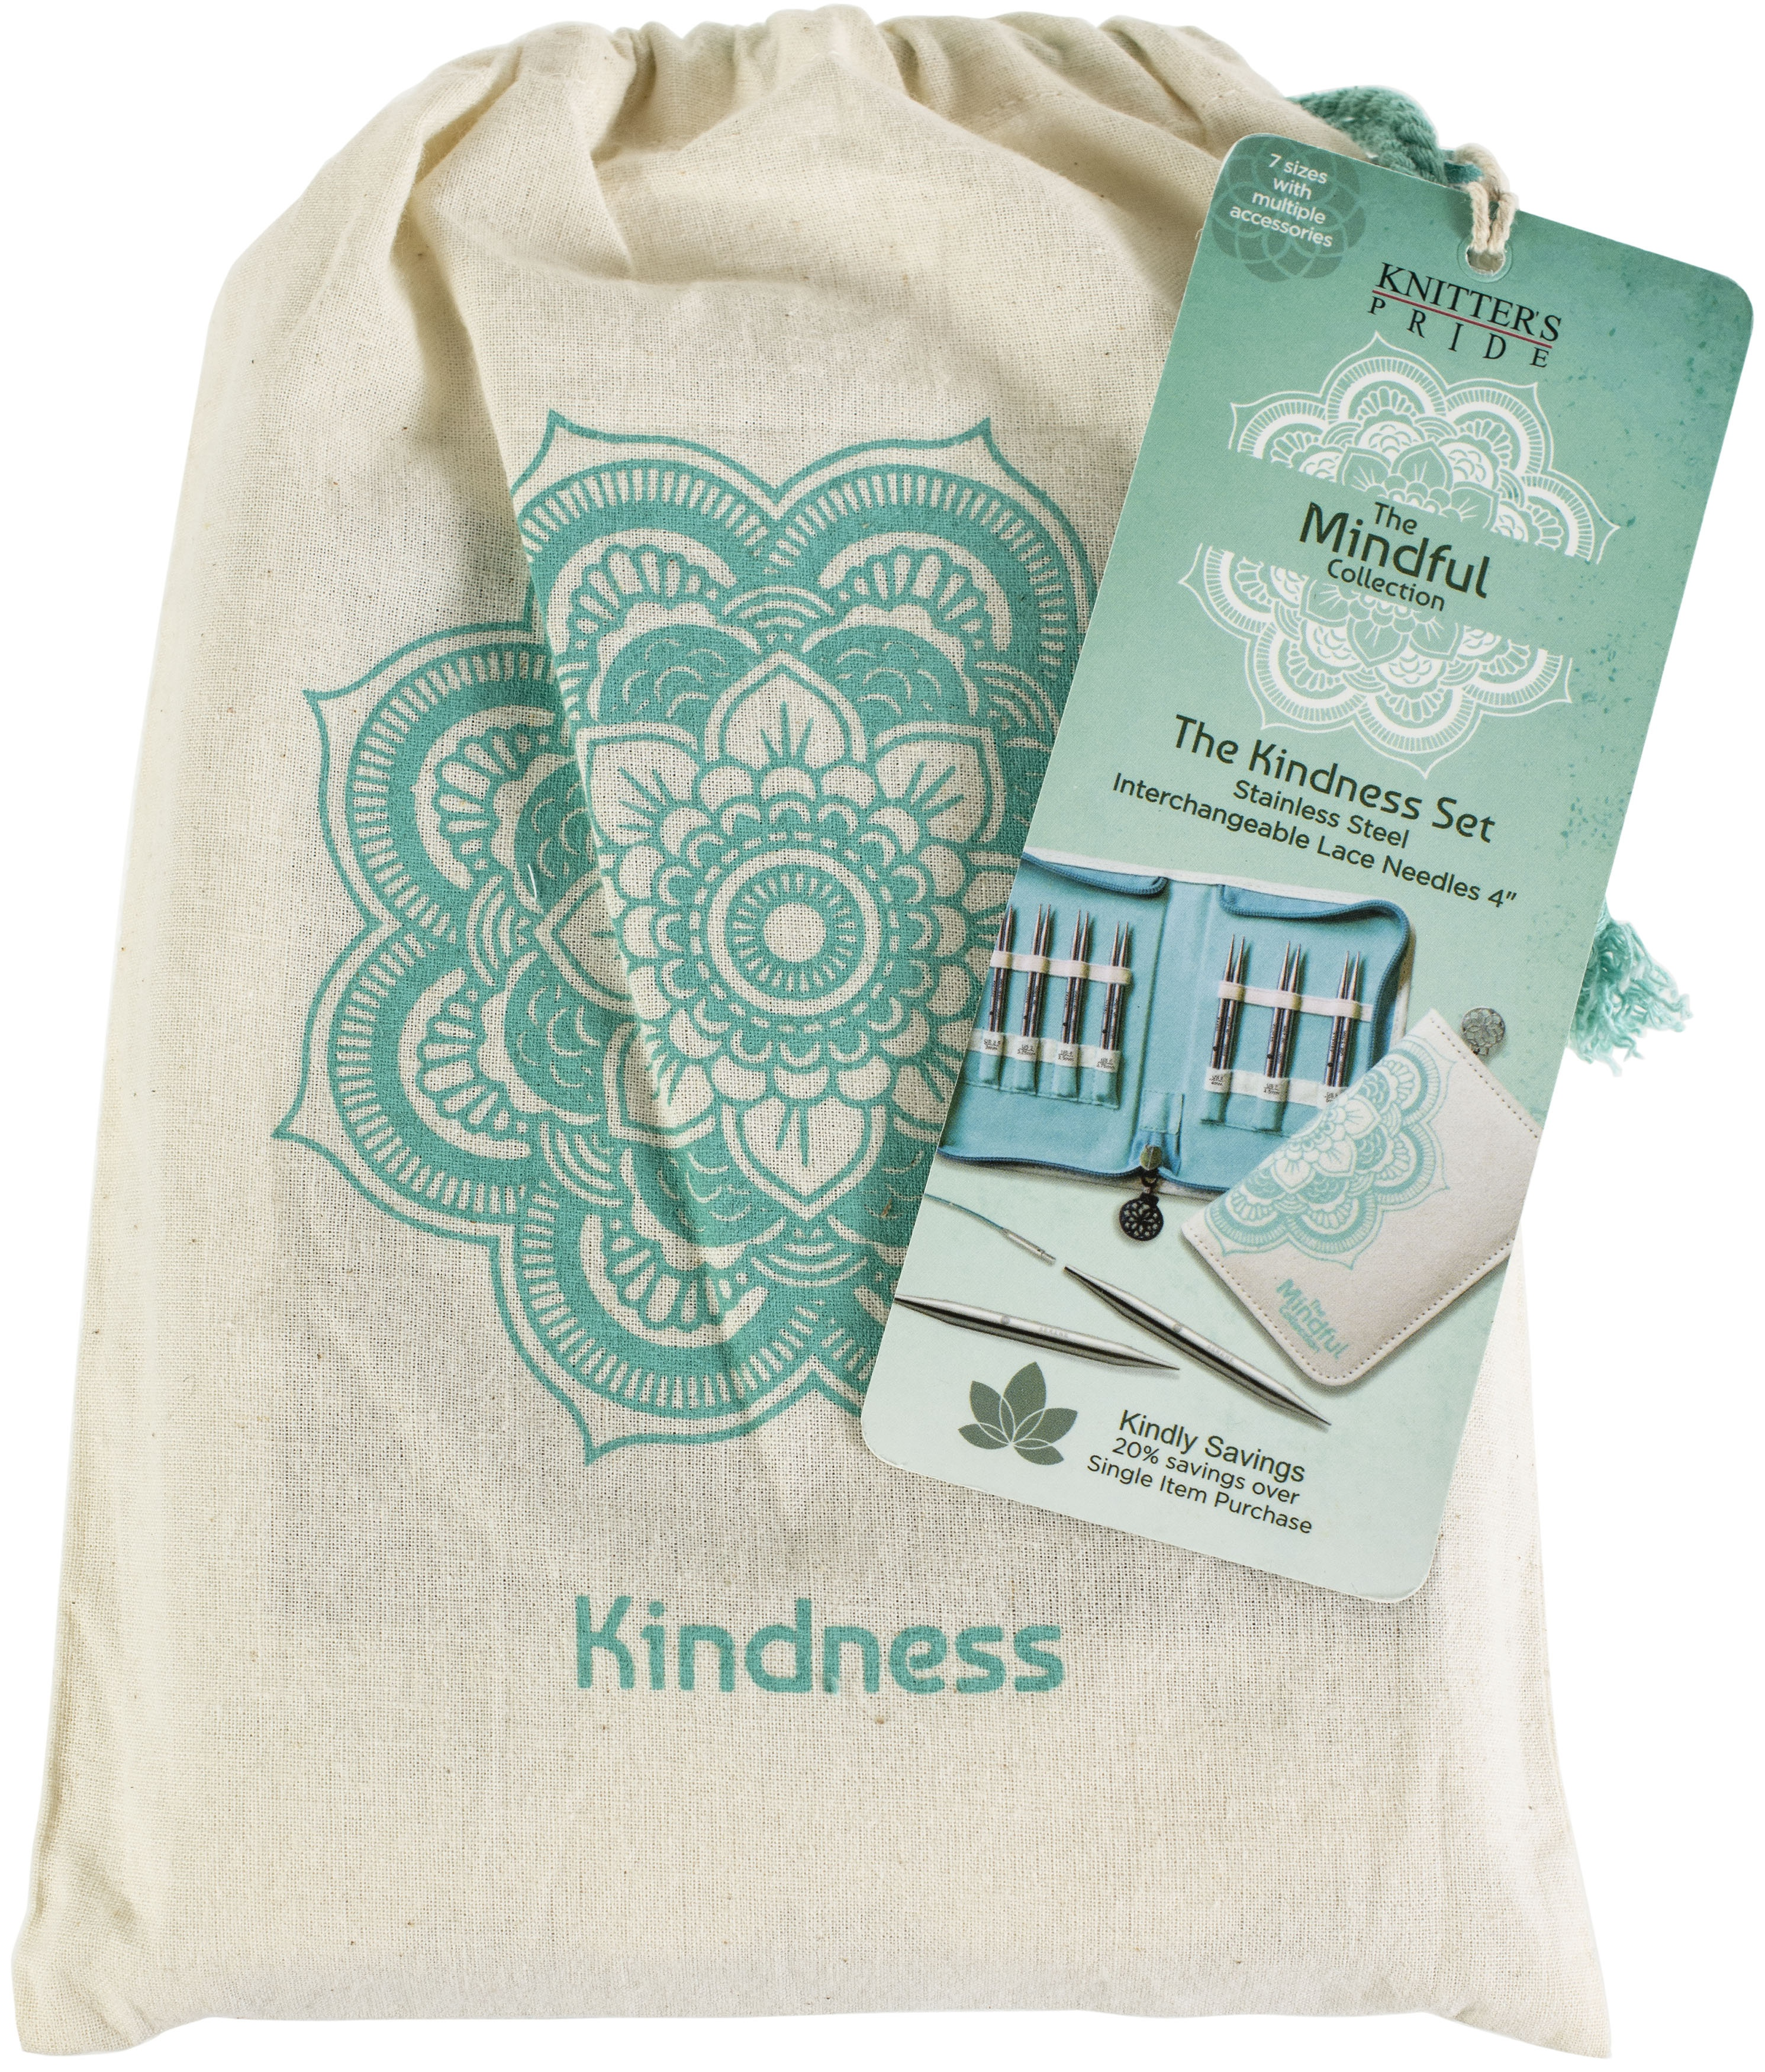 Knitter's Pride-Mindful Interchangeable Lace Needles Set 4-Kindness Sizes 2.5/3...